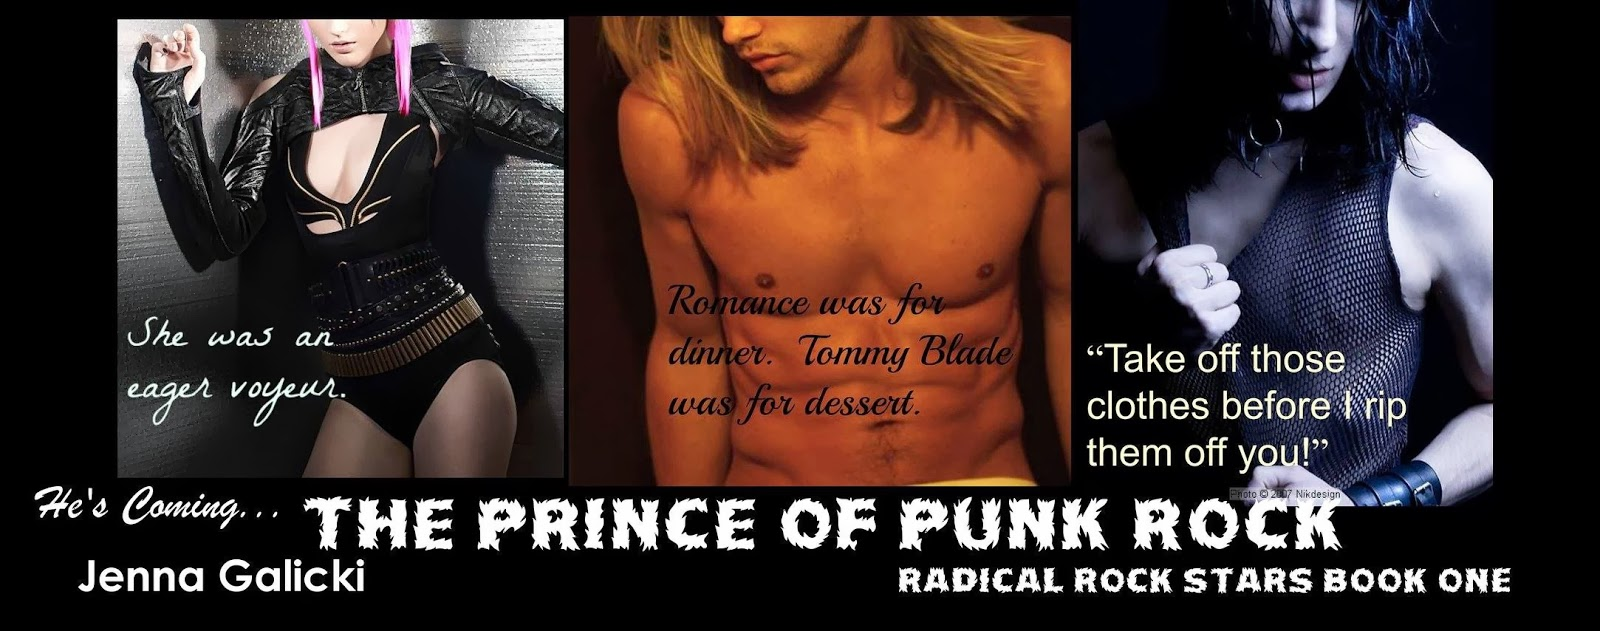 https://www.goodreads.com/book/show/20549512-the-prince-of-punk-rock?ac=1